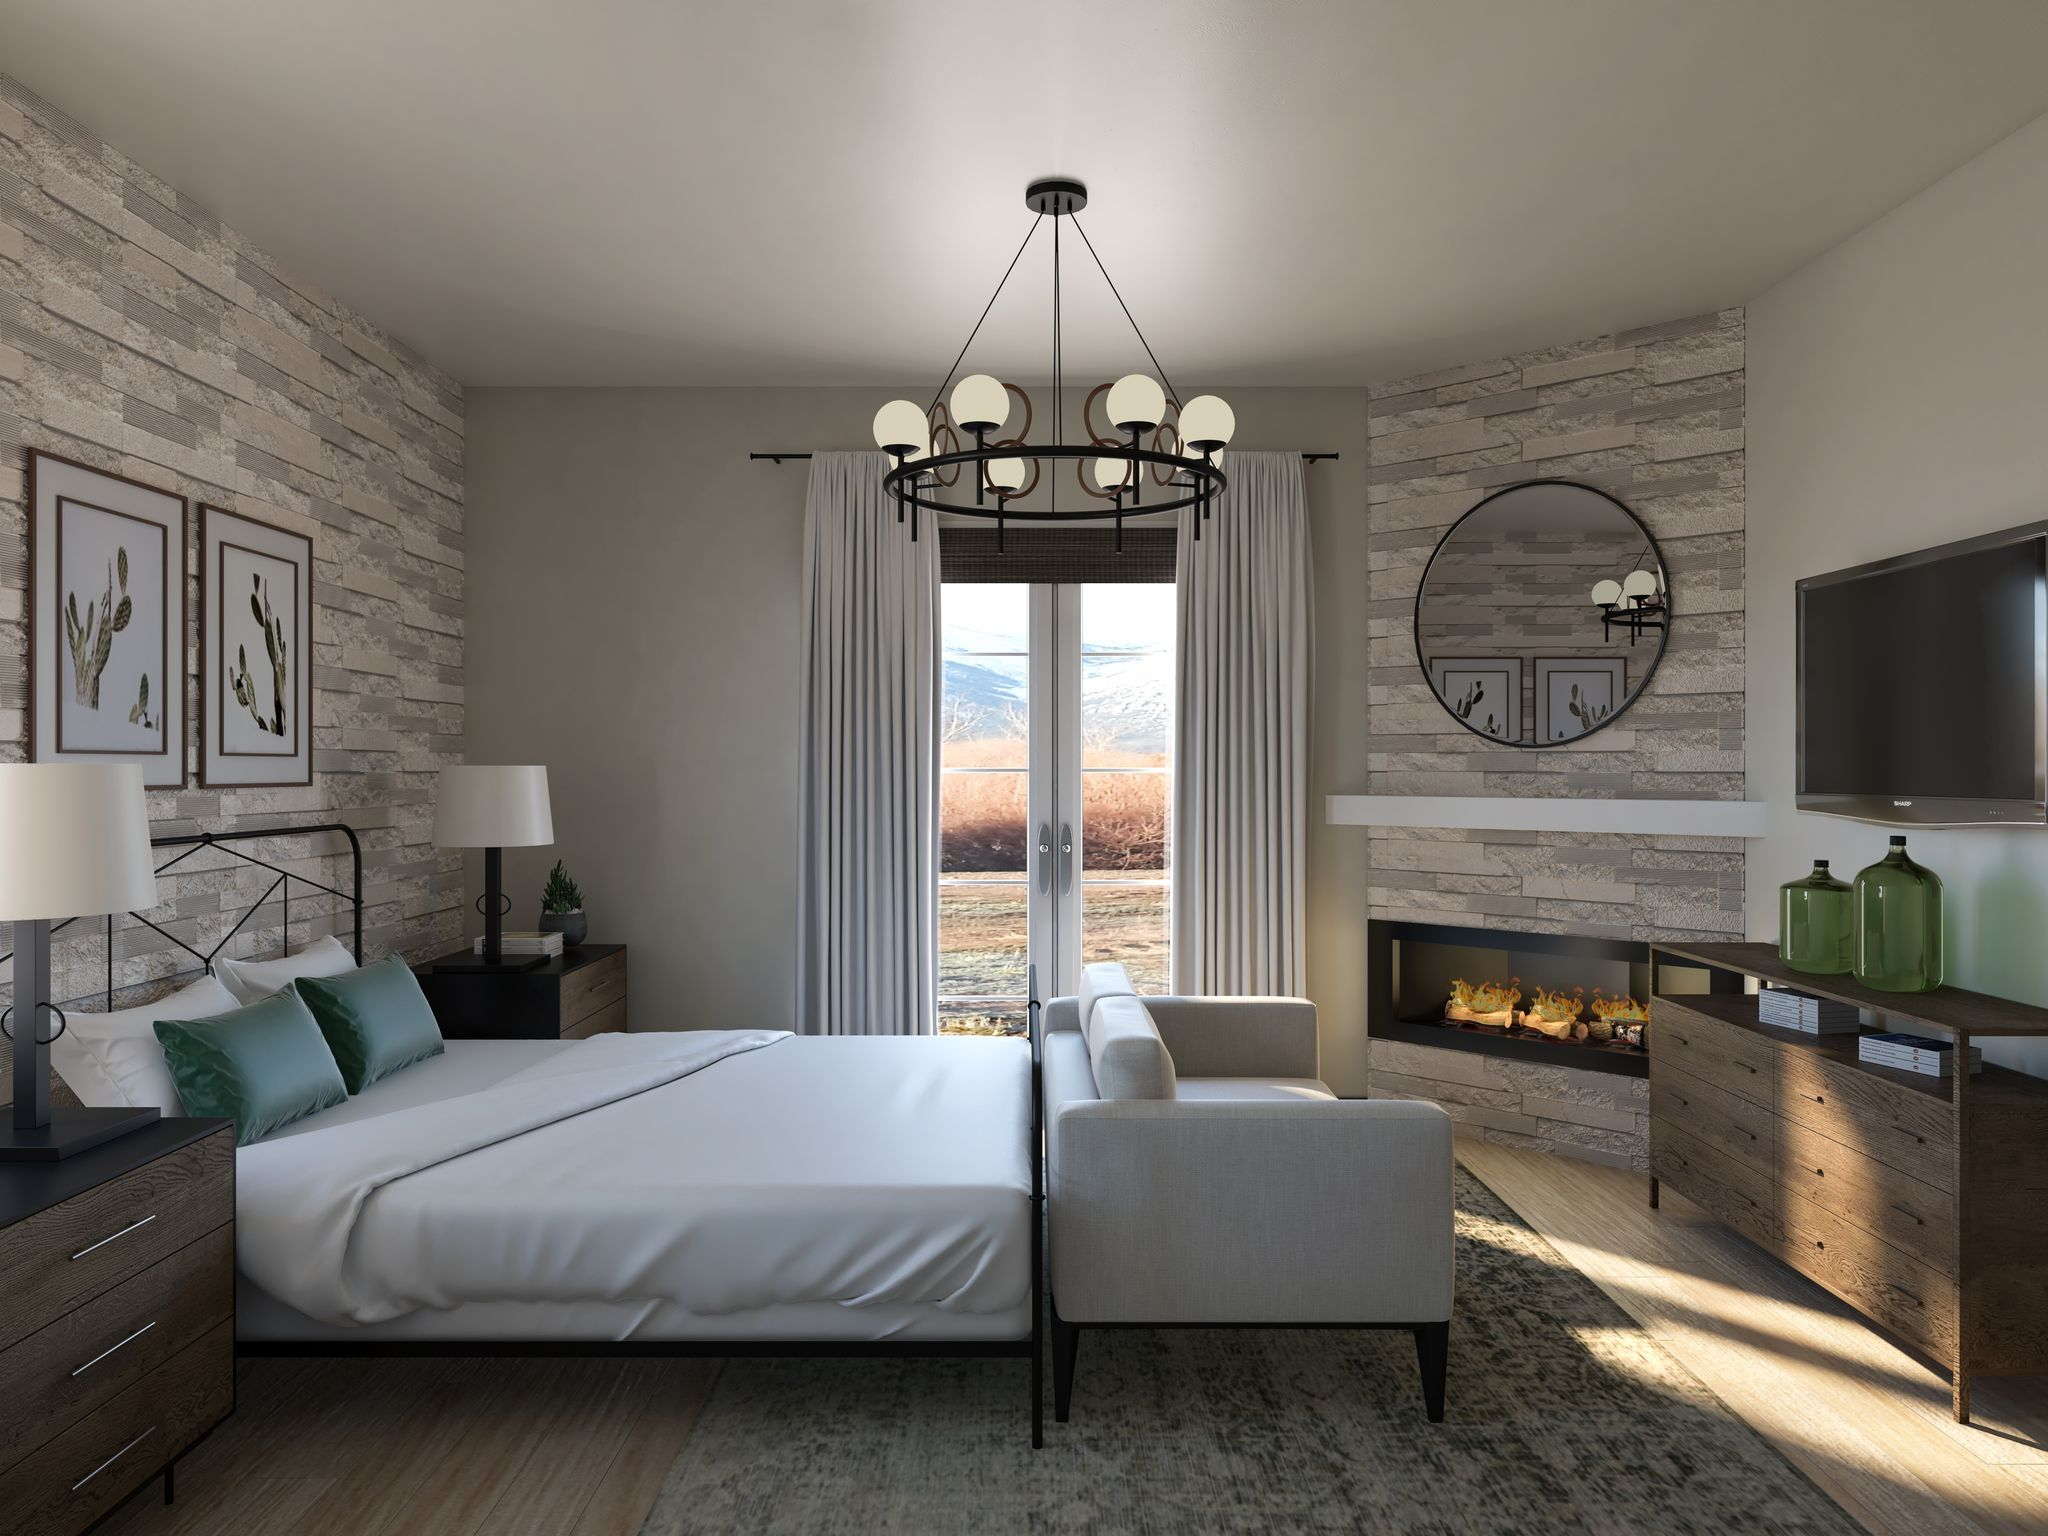 Bedroom featured in the Residence 3 By Santa Ynez Valley Construction in Reno, NV